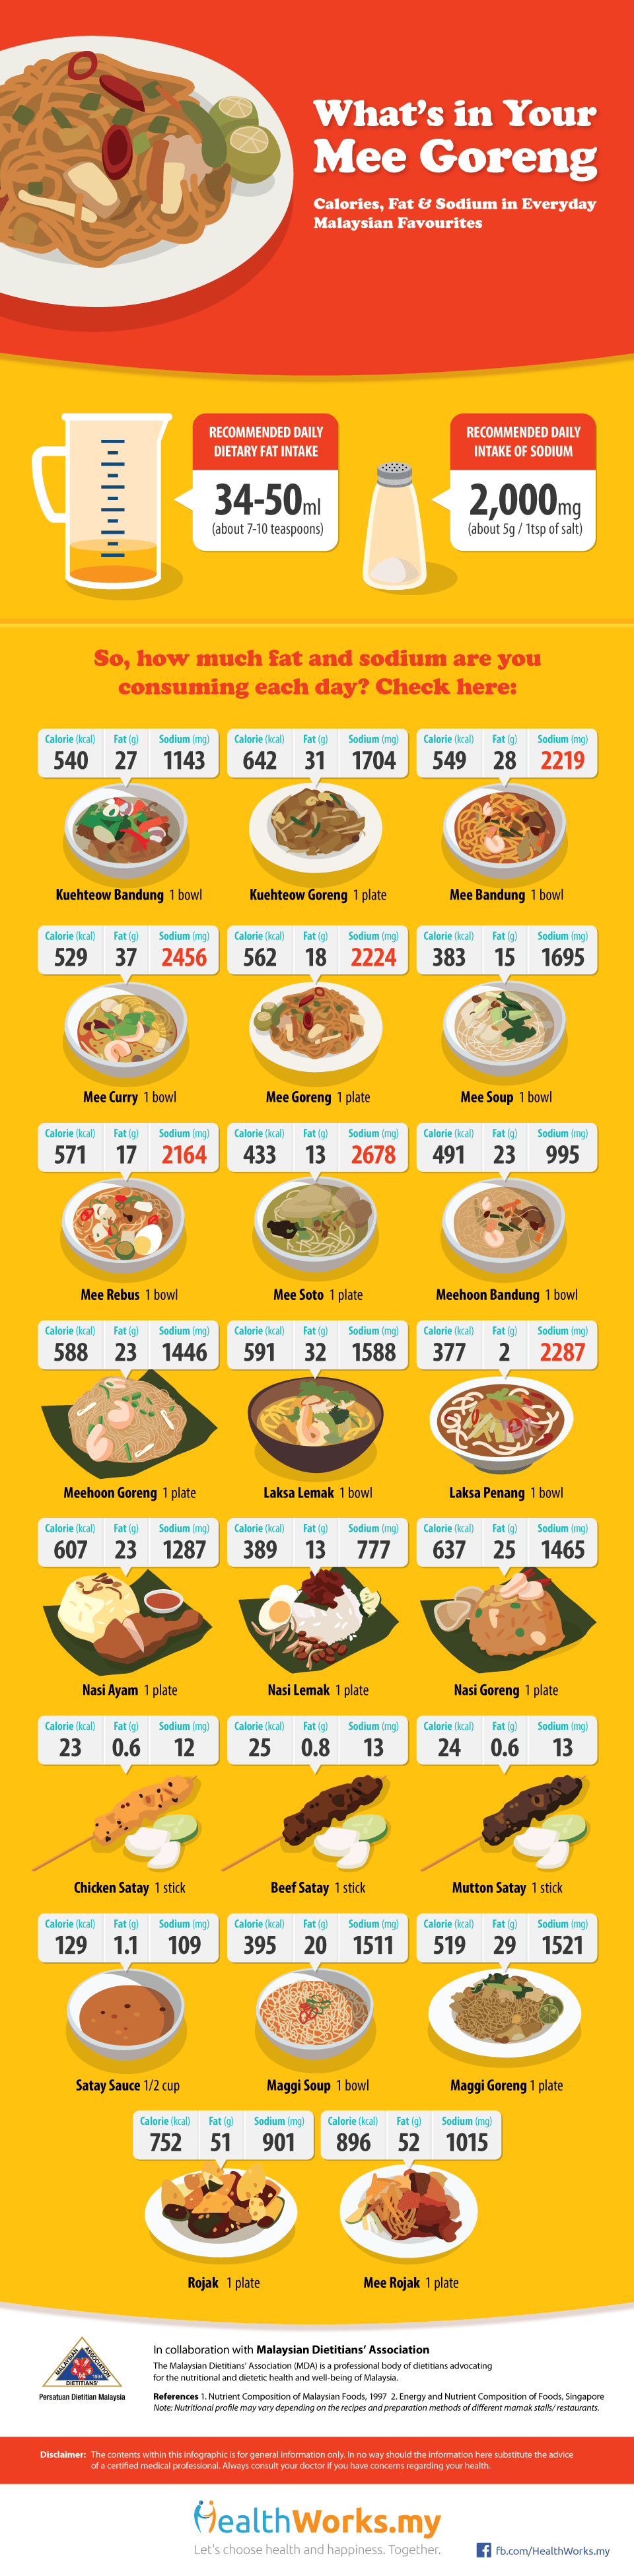 hawker food malaysia infographic